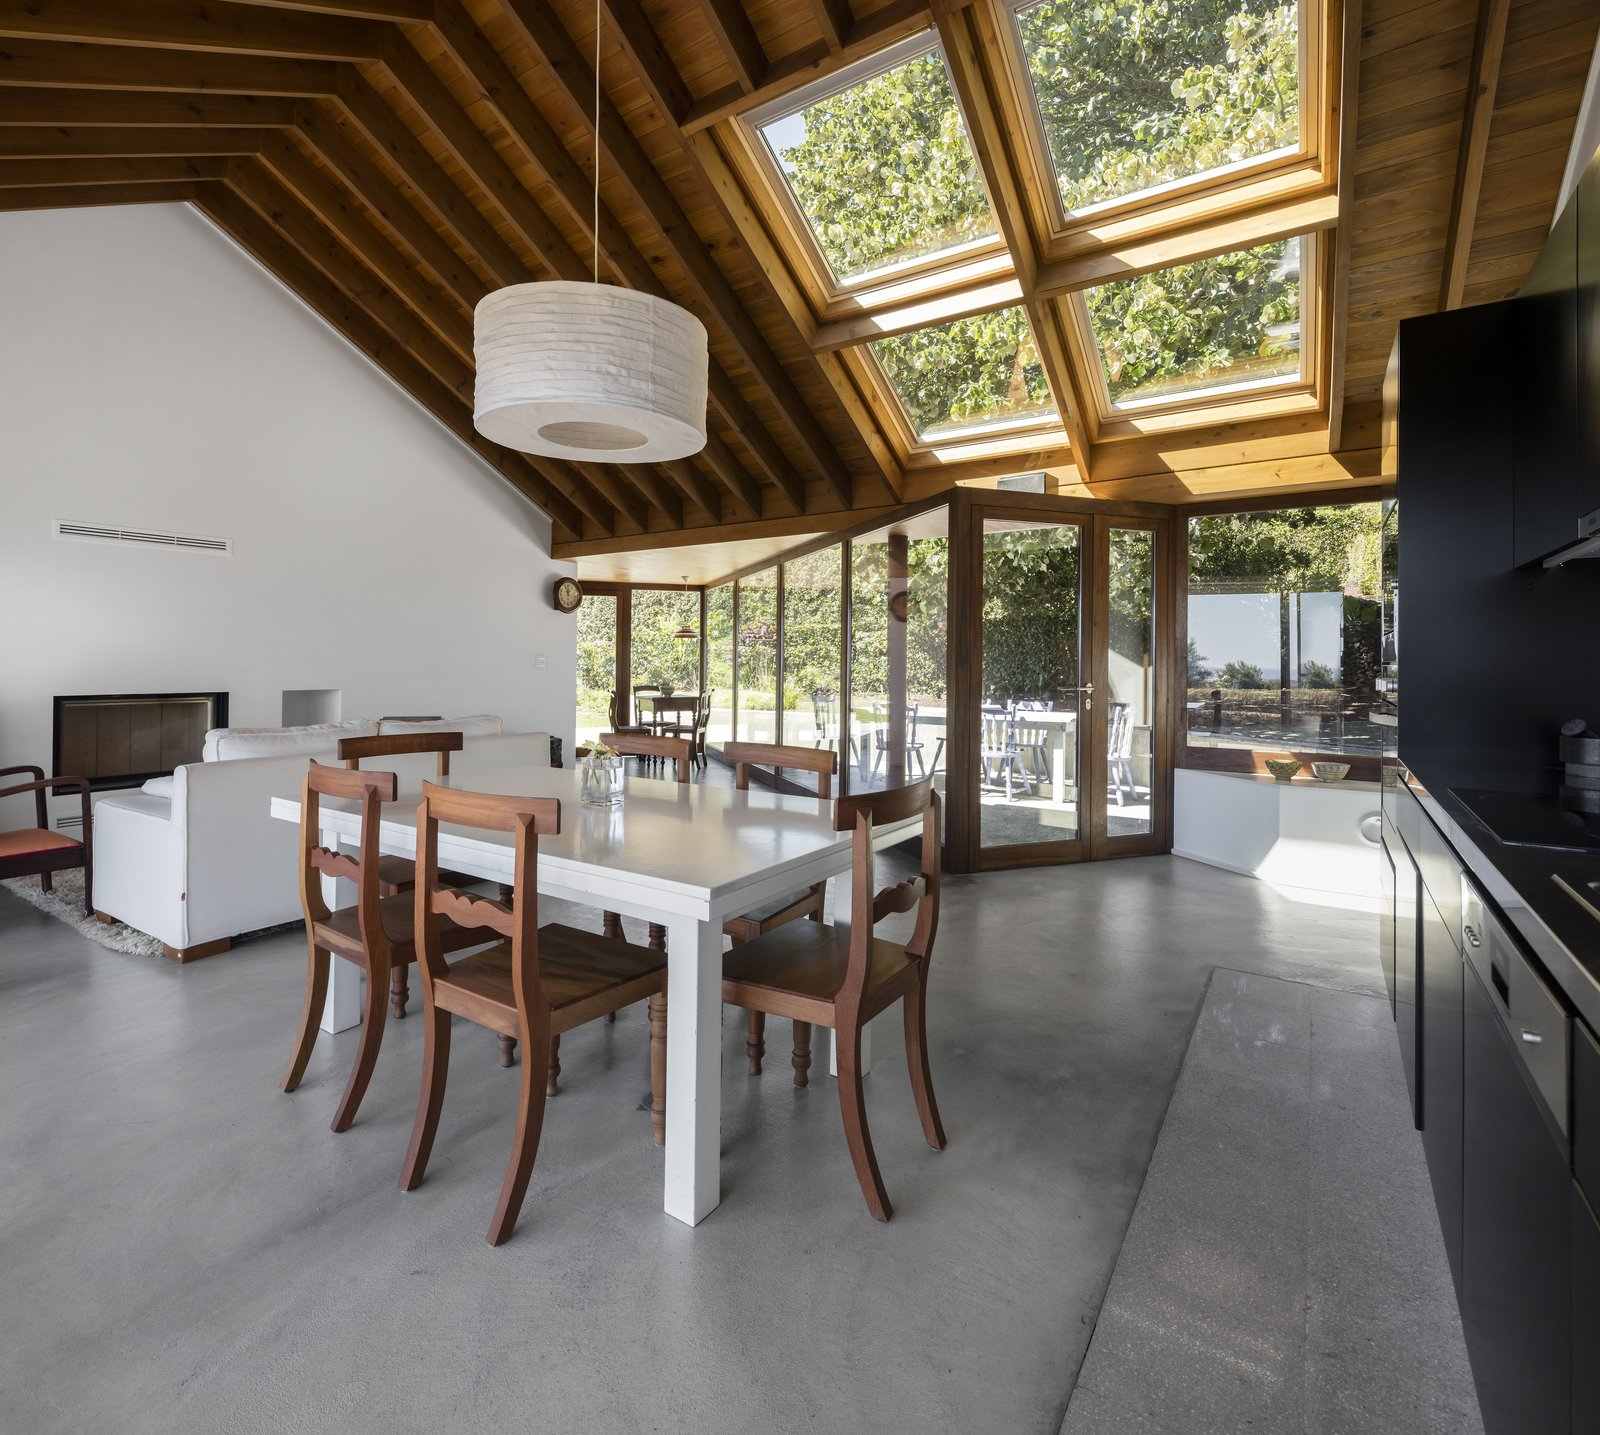 A simple, open plan living, dining and kitchen area that almost feels like part of the courtyard outdoors.